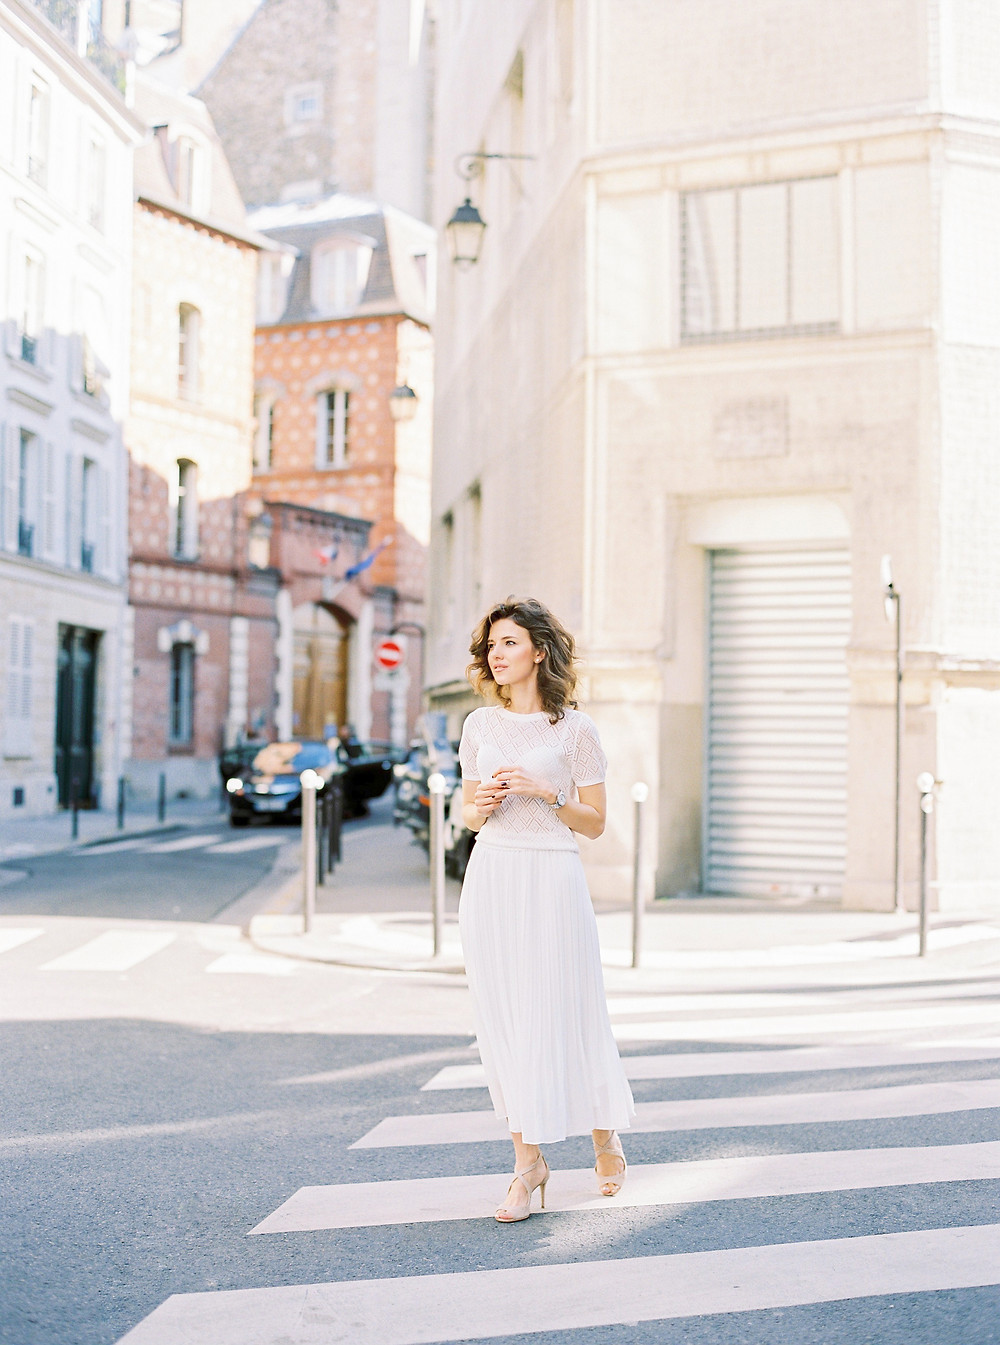 Parisian streets and girl in total wight outfit and Jimmy Choo sandals